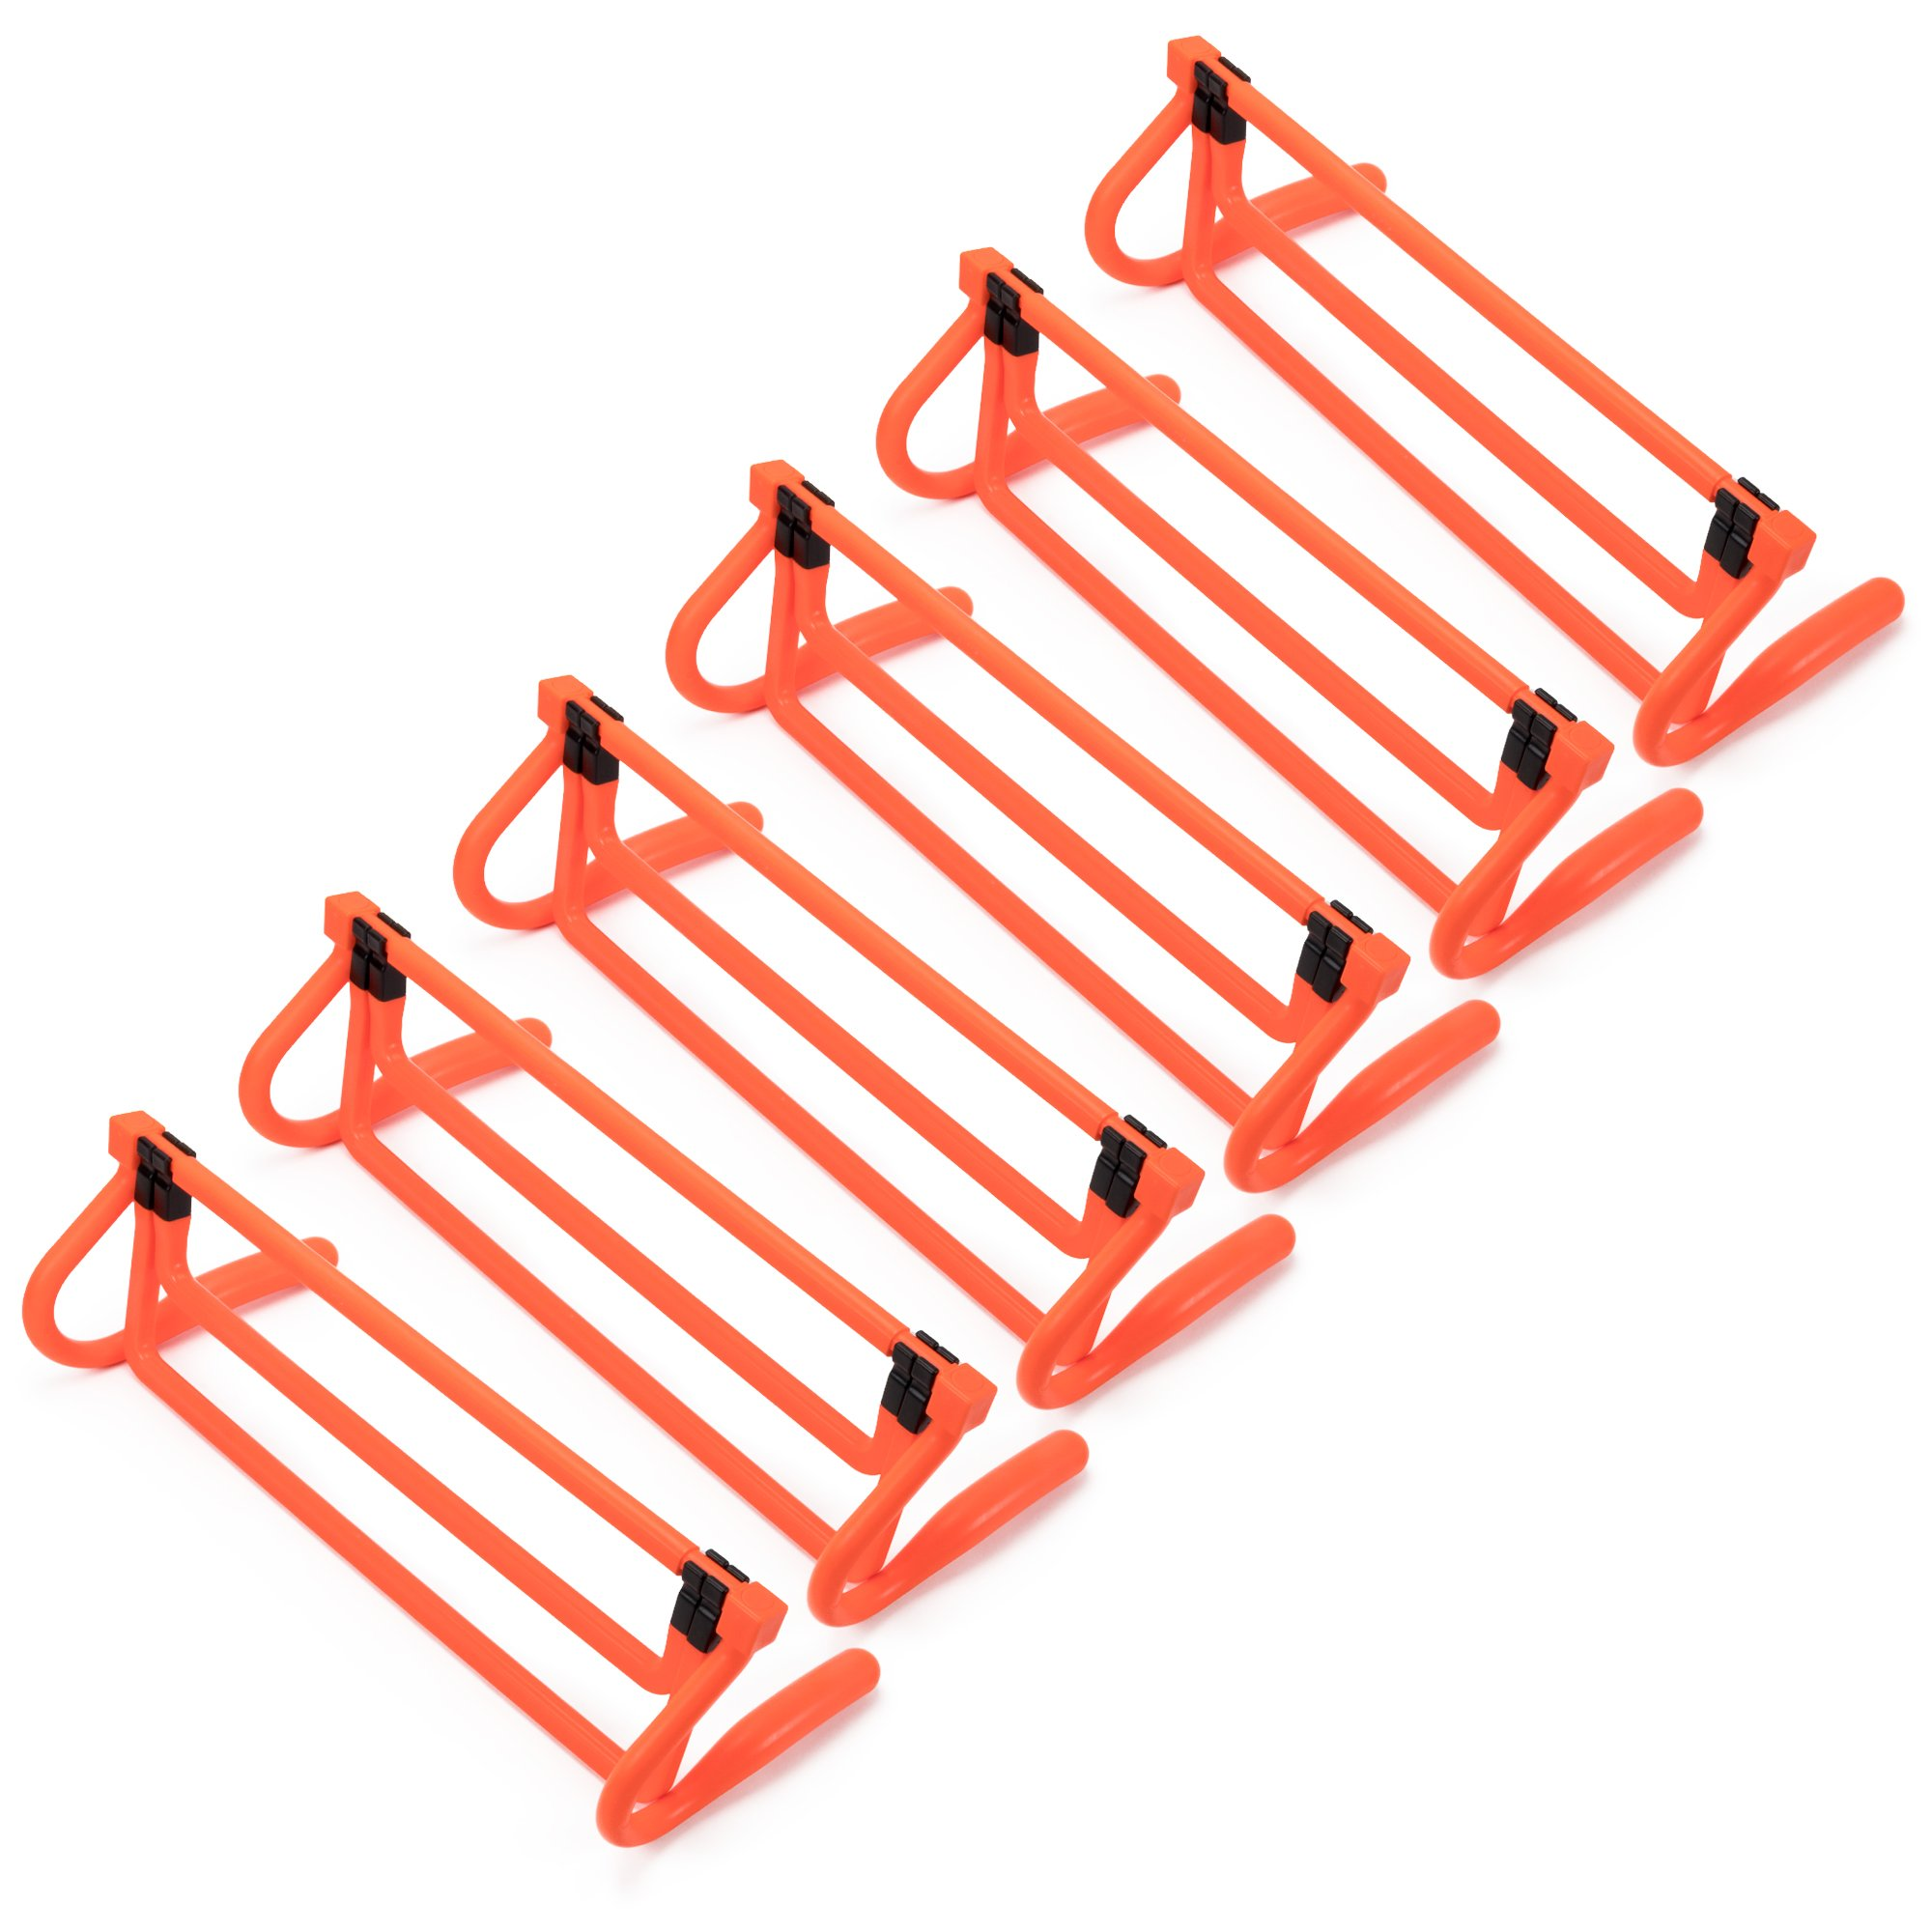 6-Pack of Agility Hurdles – Neon Orange with Adjustable Height Extenders & Carry Bag, Multisport Plyometric Fitness & Speed Training Equipment by Crown Sporting Goods